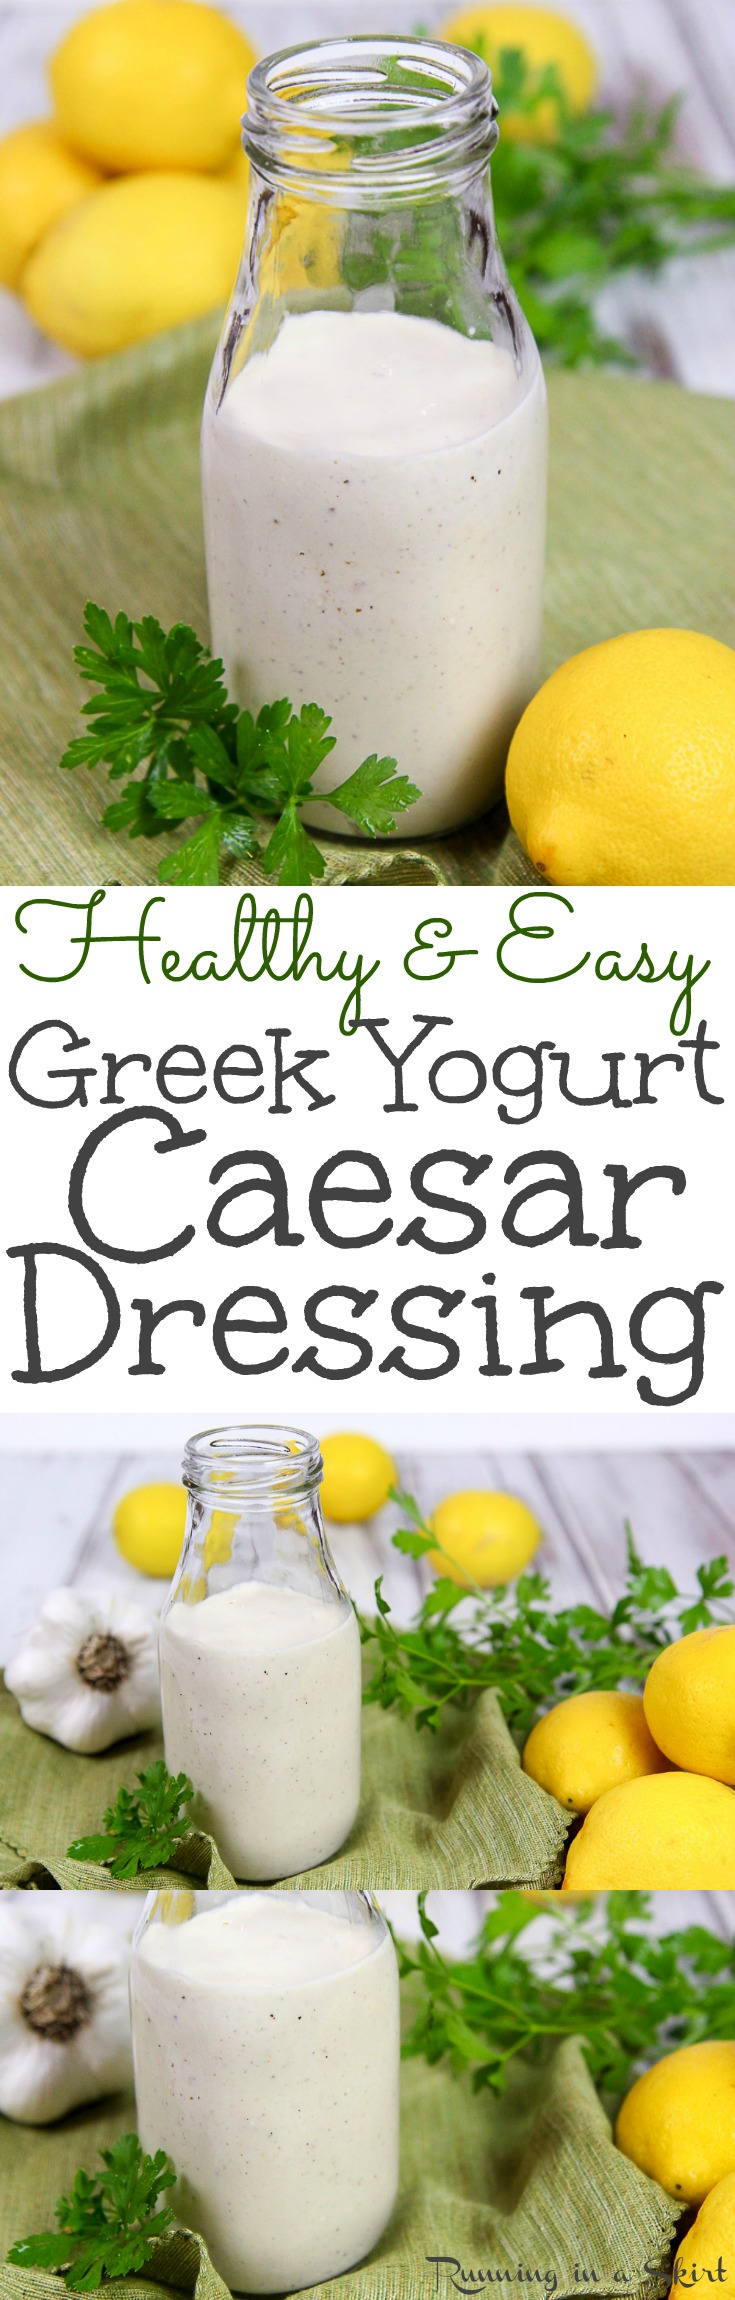 The Best Greek Yogurt Healthy Caesar Dressing recipe.  An easy, creamy version that's healthier with no mayo!  Light, simple and still tastes like the restaurant.  Uses garlic and lemon! / Running in a Skirt via @juliewunder